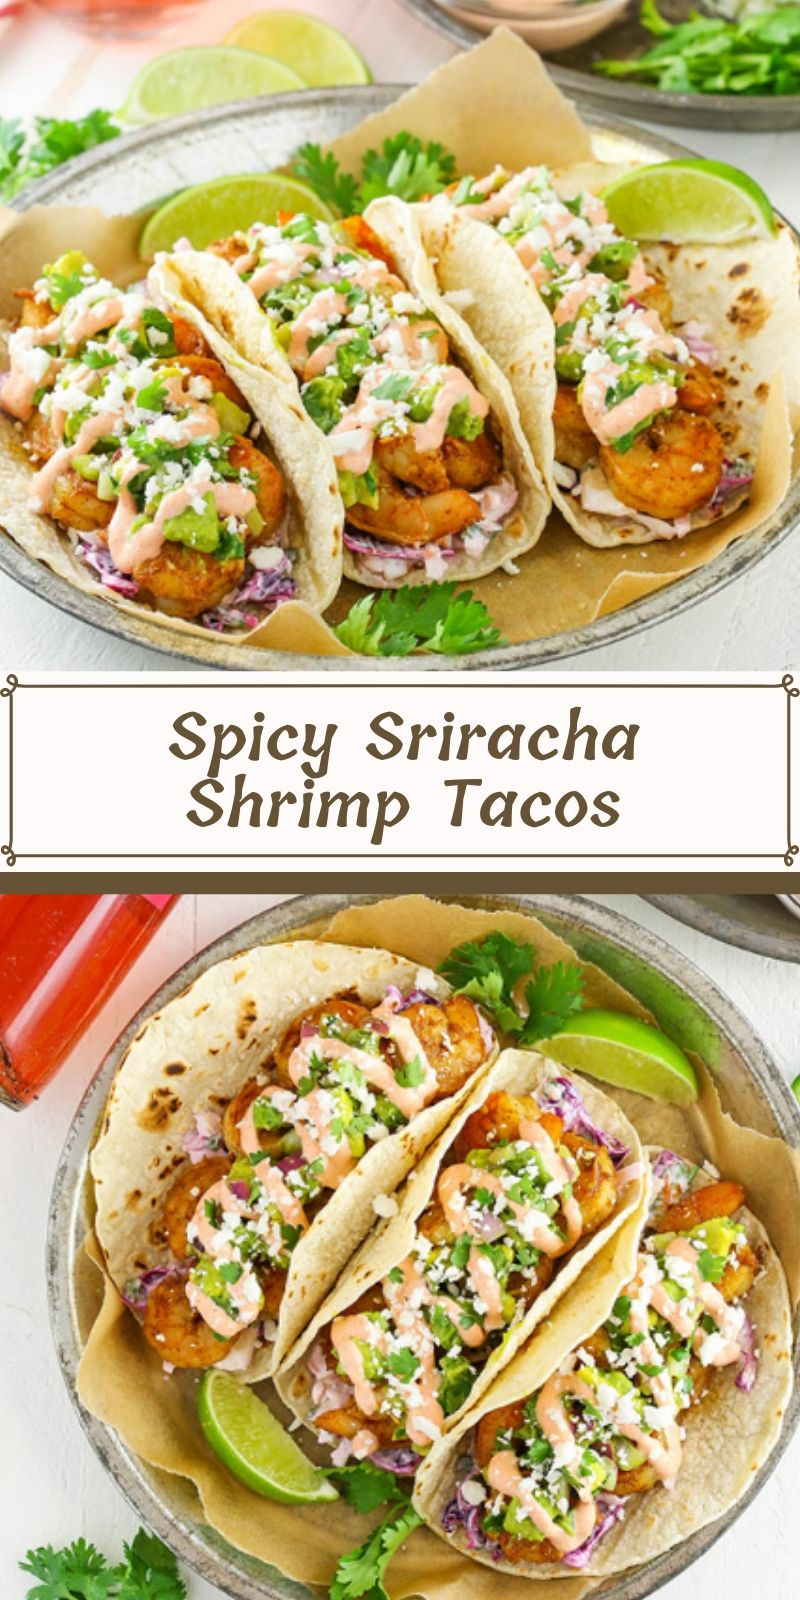 https://www.lifeloveandsugar.com/spicy-sriracha-shrimp-tacos/